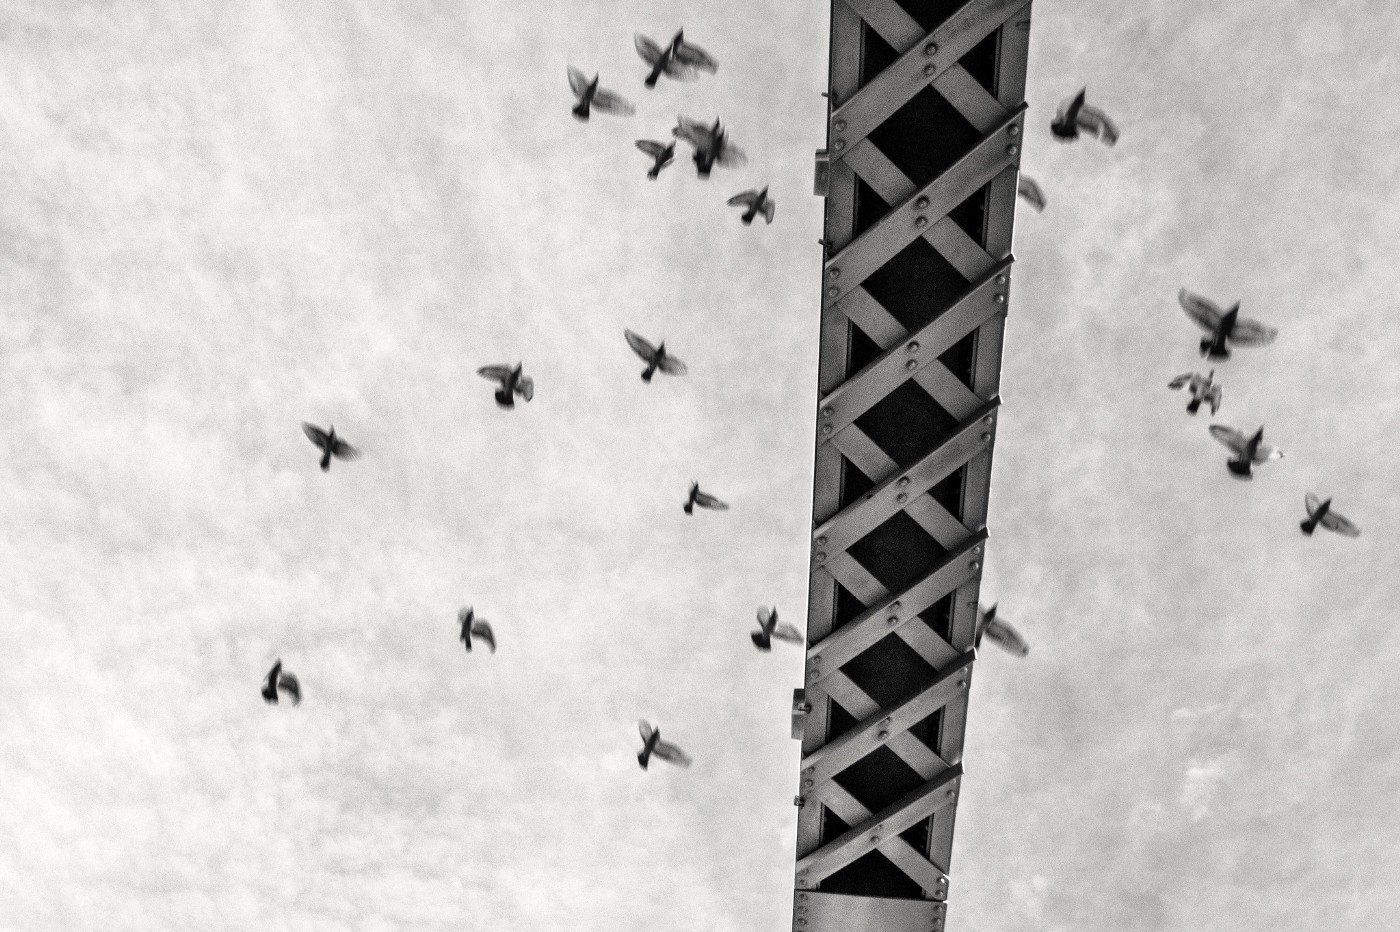 A black and white photo of birds flying against a construction crane in the sky.